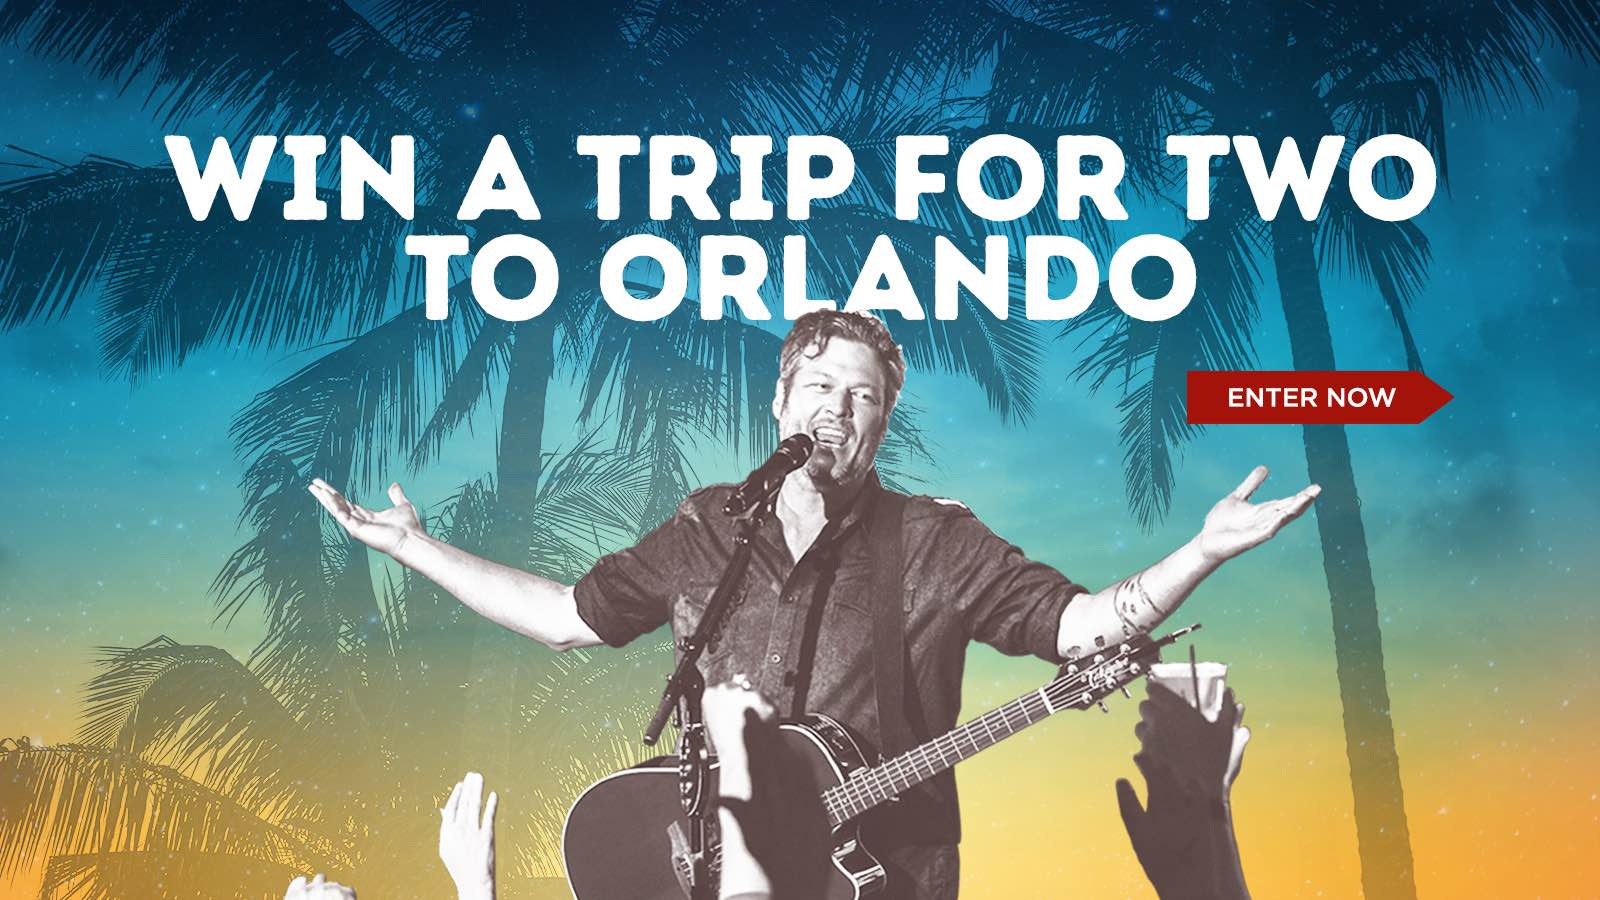 Win a Trip for Two to Orlando - Enter Now